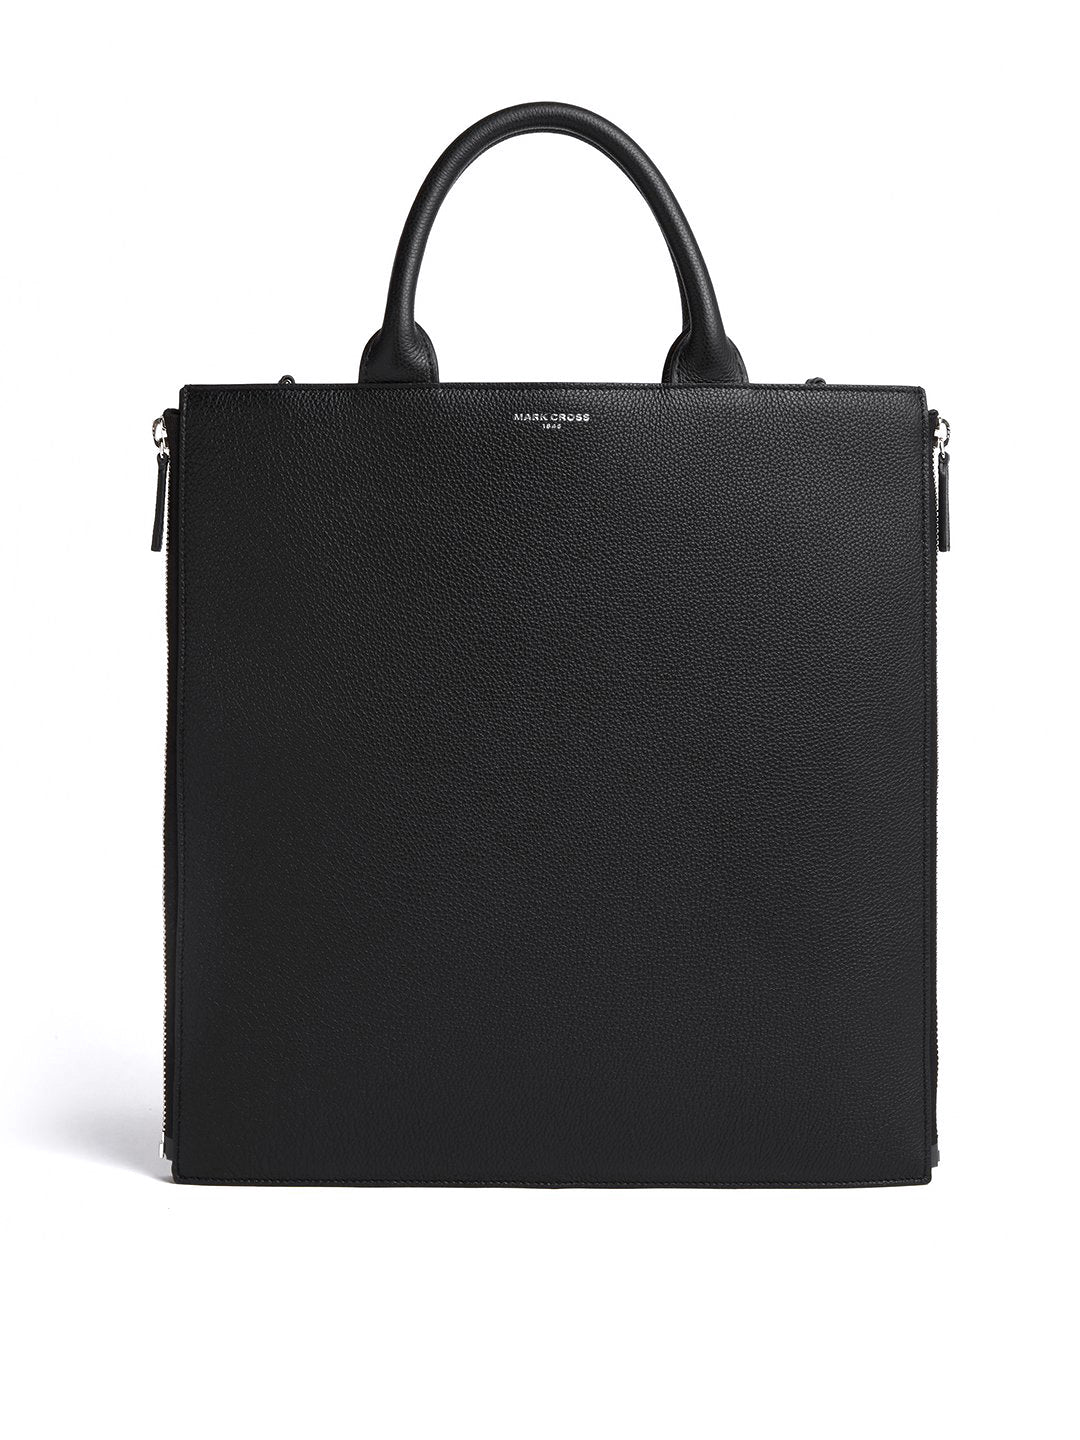 Sidney Leather Tote Bag